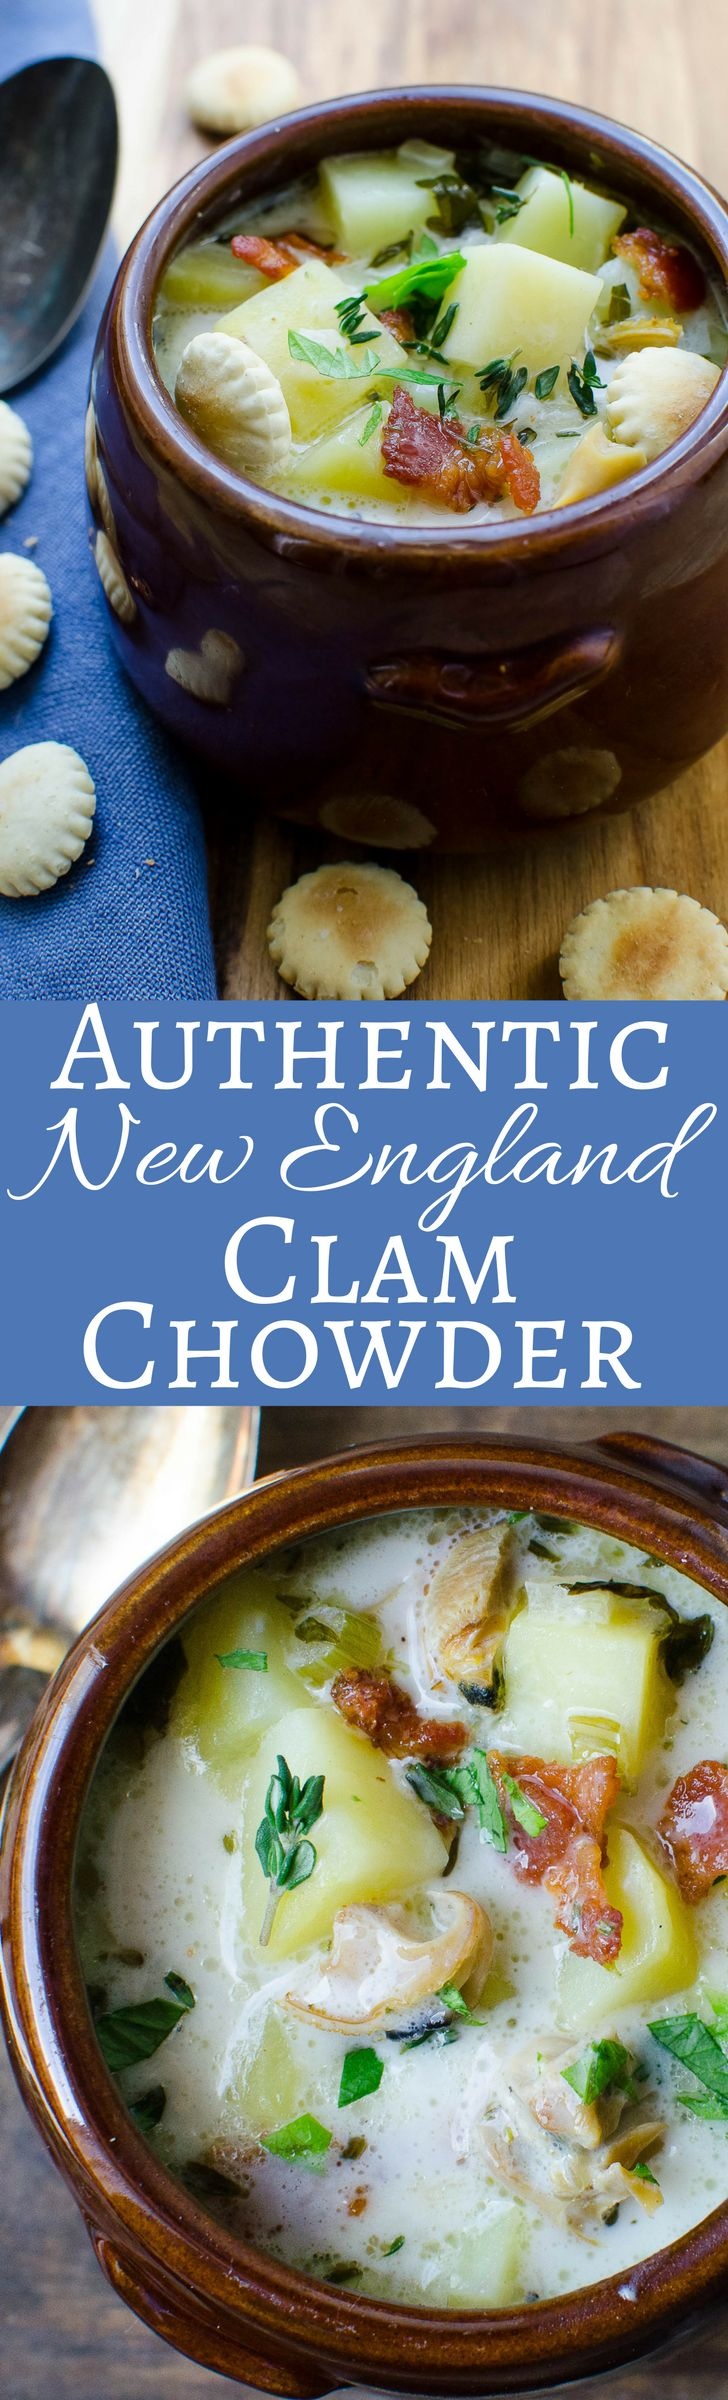 The best recipe for clam chowder, with a creamy, briny broth, fresh chopped clams, tender potatoes and bacon! Easier than you think to make!